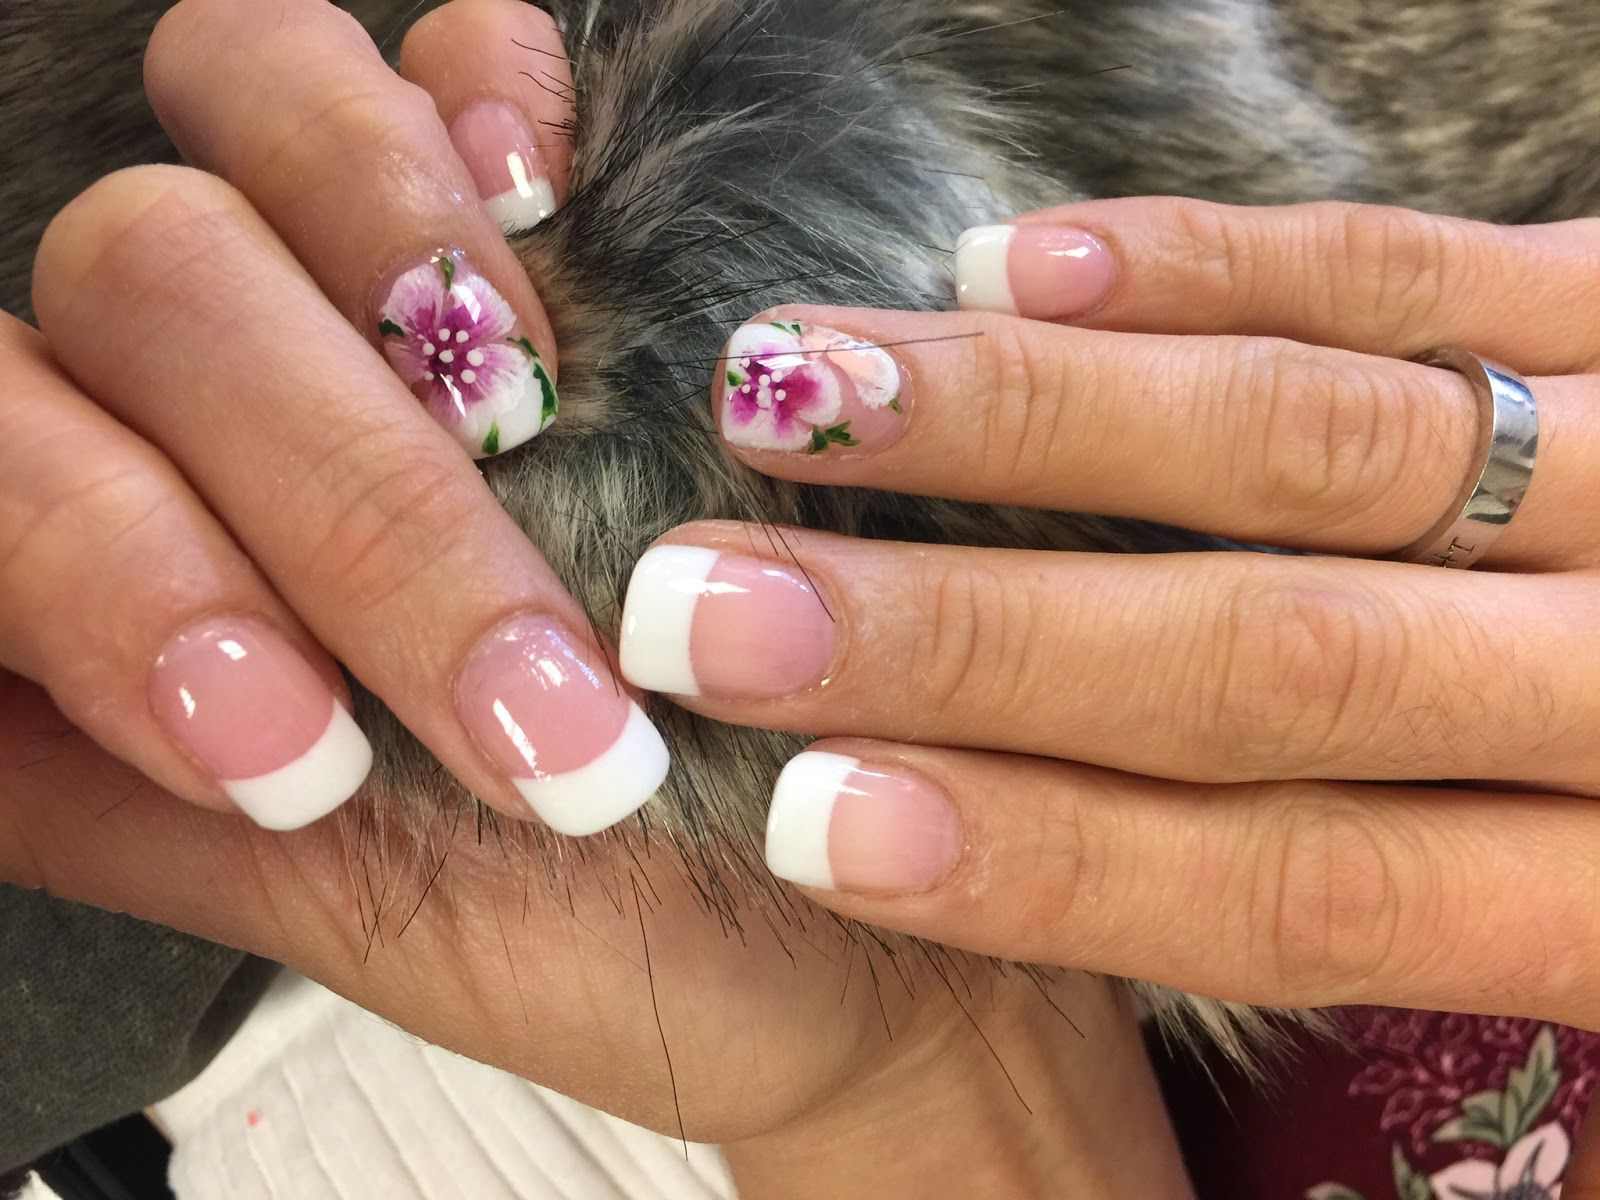 Nails Art With Flowers Decoration At Nails Expo Spa Nails Toe